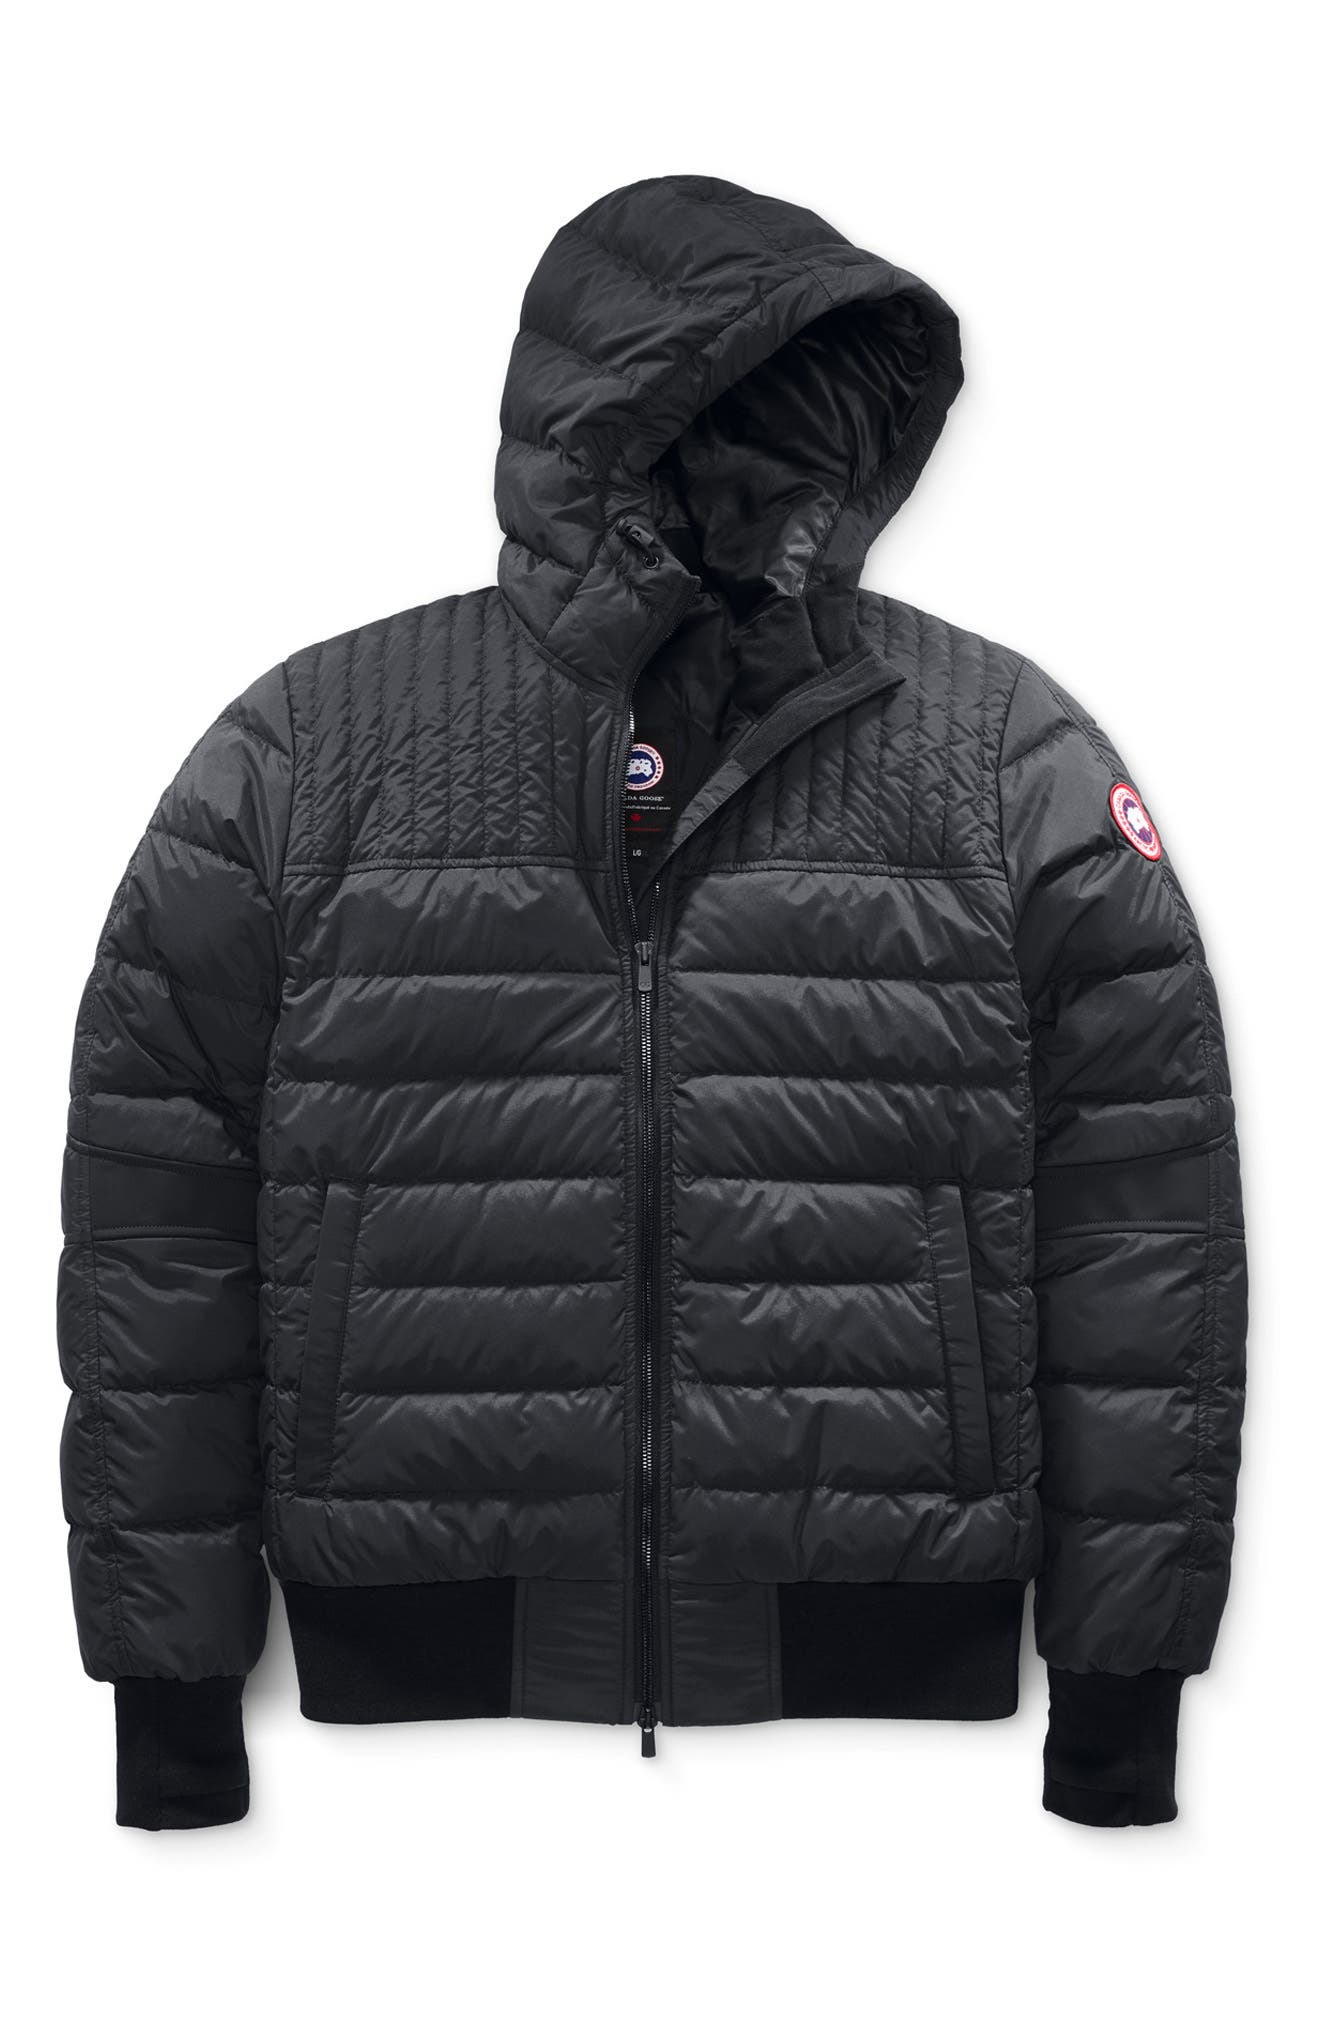 Canada Goose Cabri Hooded Packable Down Jacket, Black